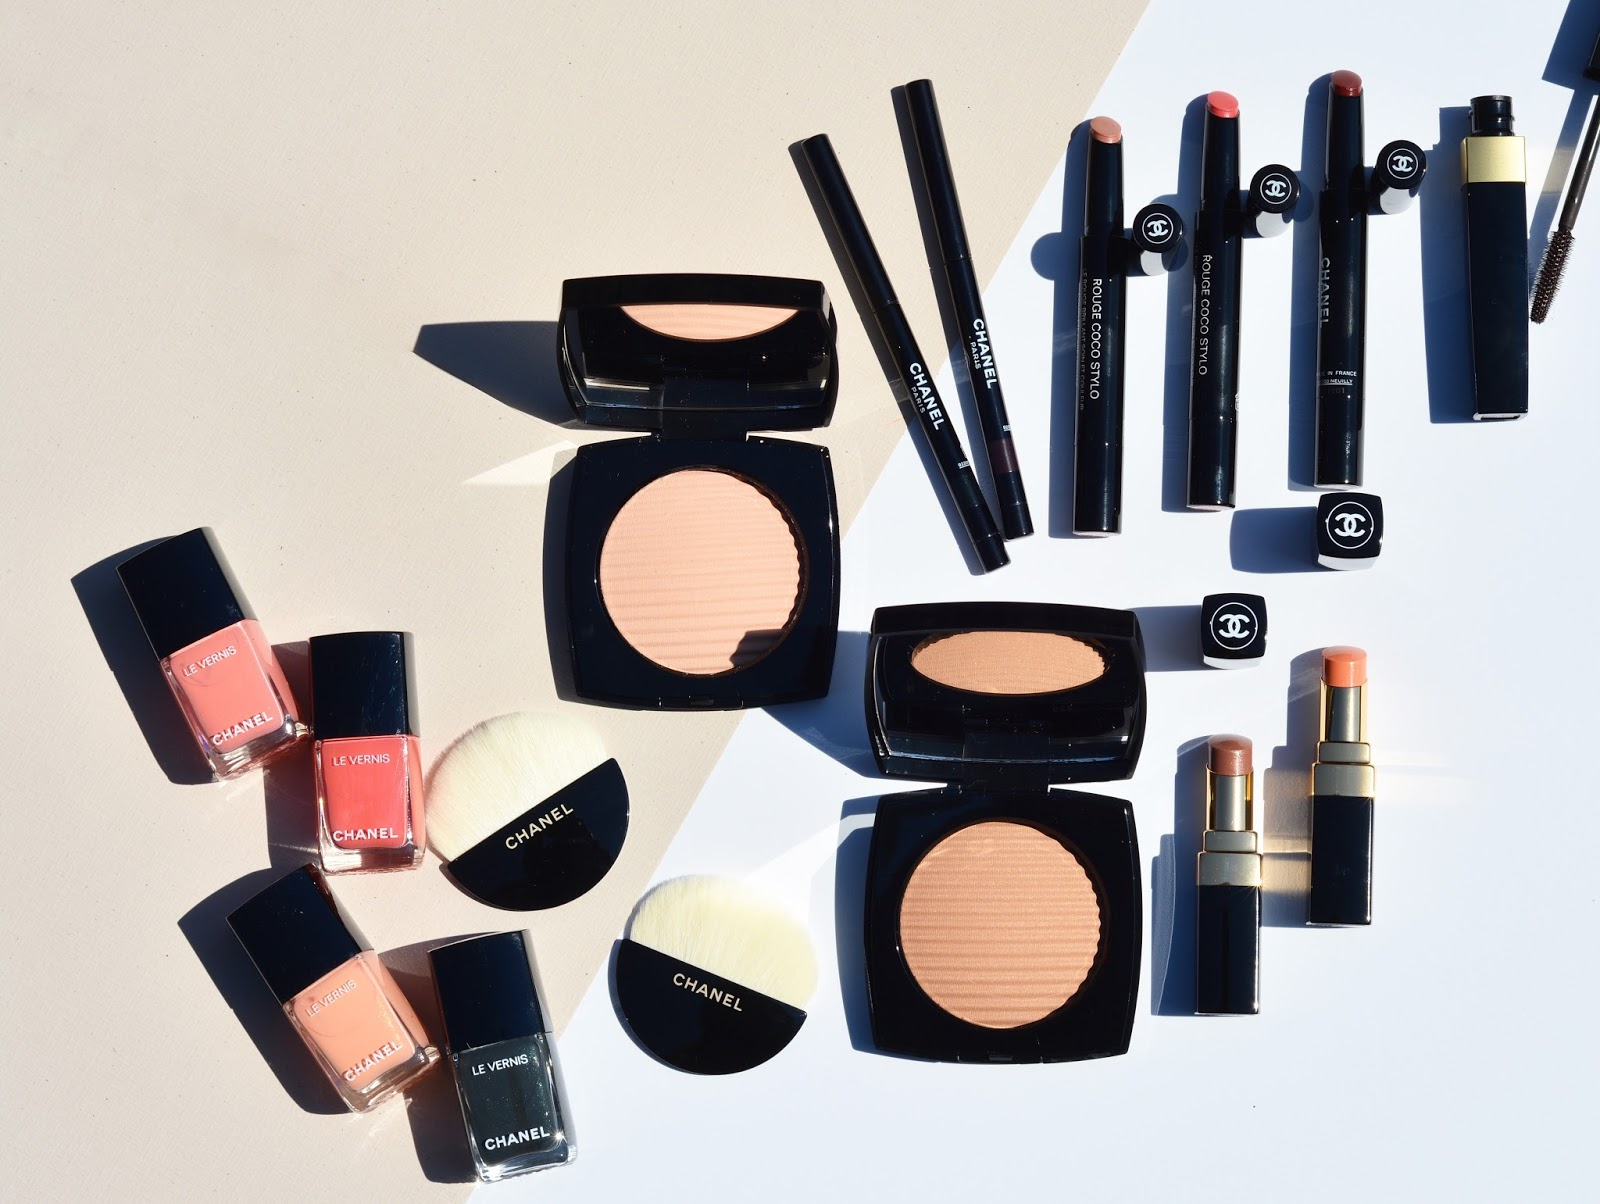 chanel summer 2017 cruise collection makeup review swatches